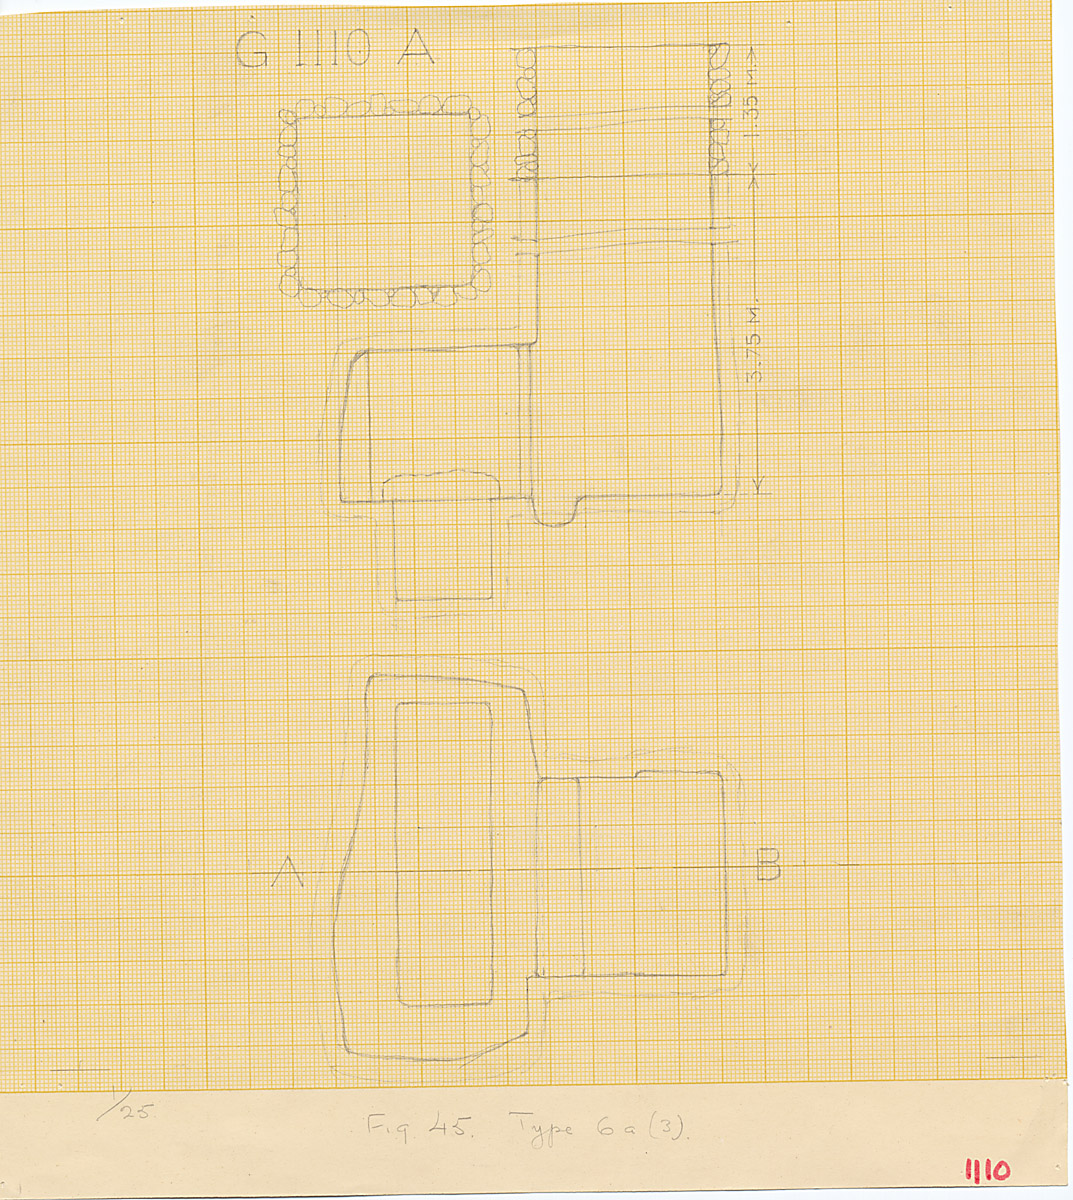 Maps and plans: G 1110, Shaft A